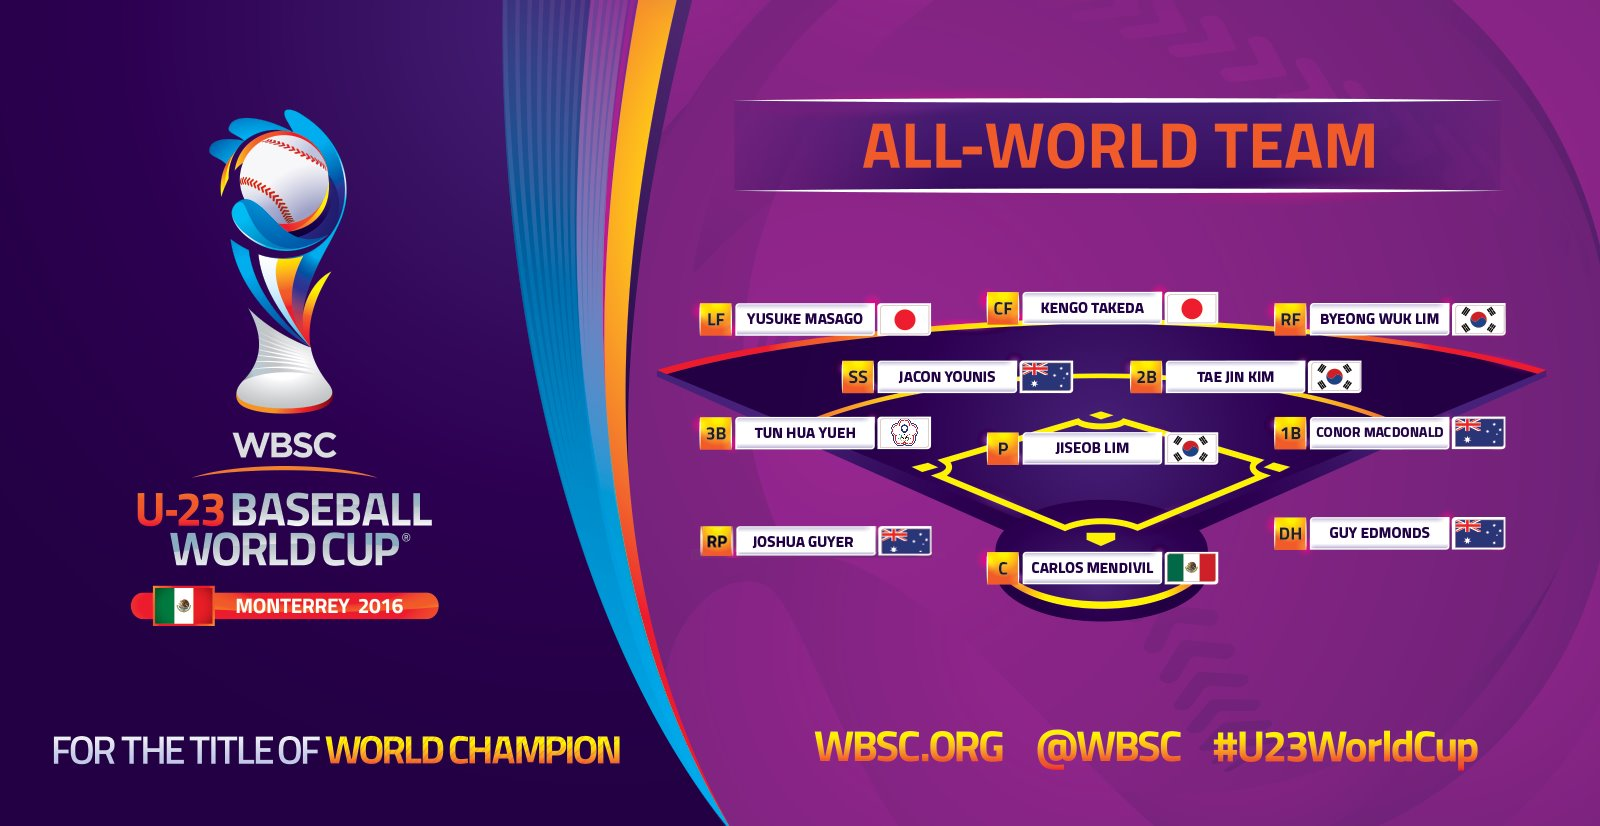 WBSC U-23 All-World Team 2016